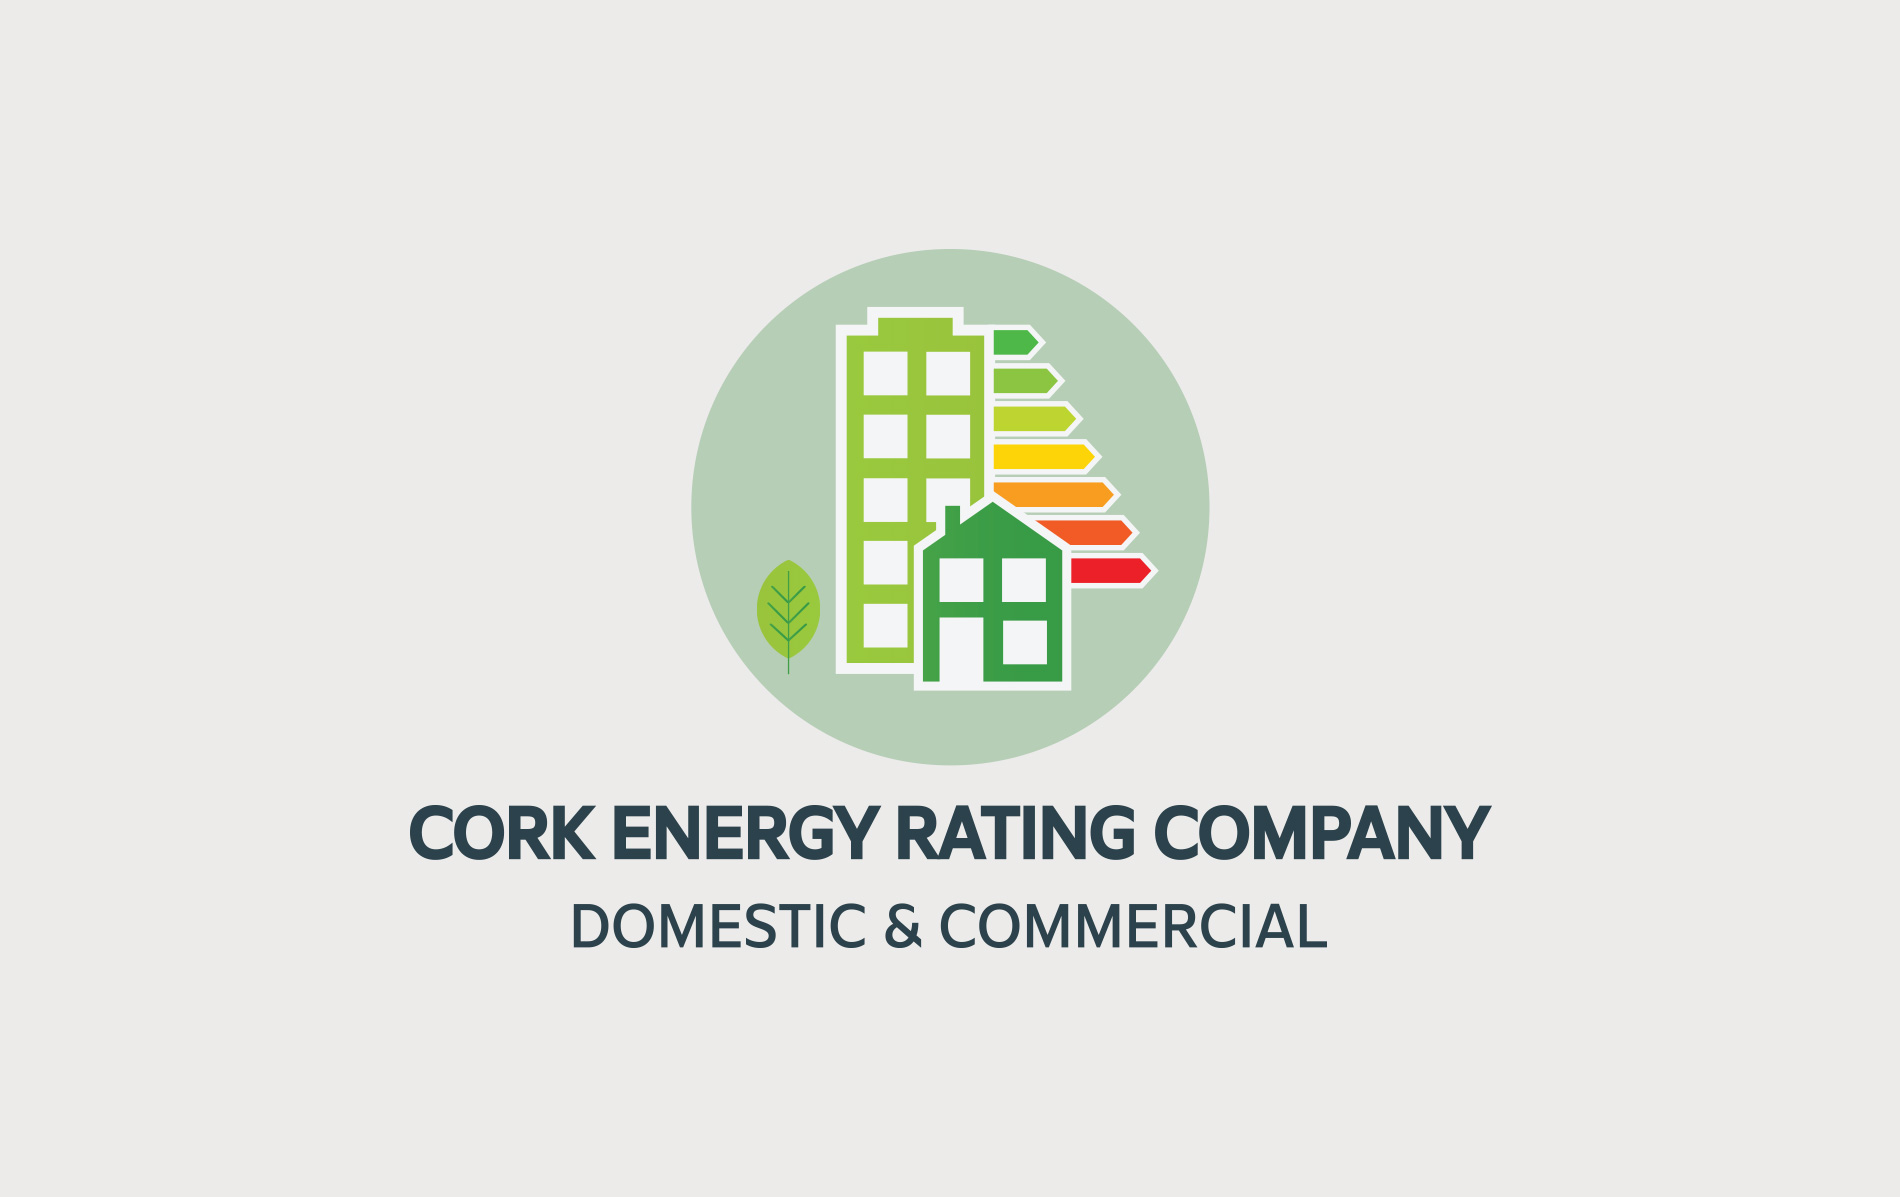 Cork Energy Rating Company